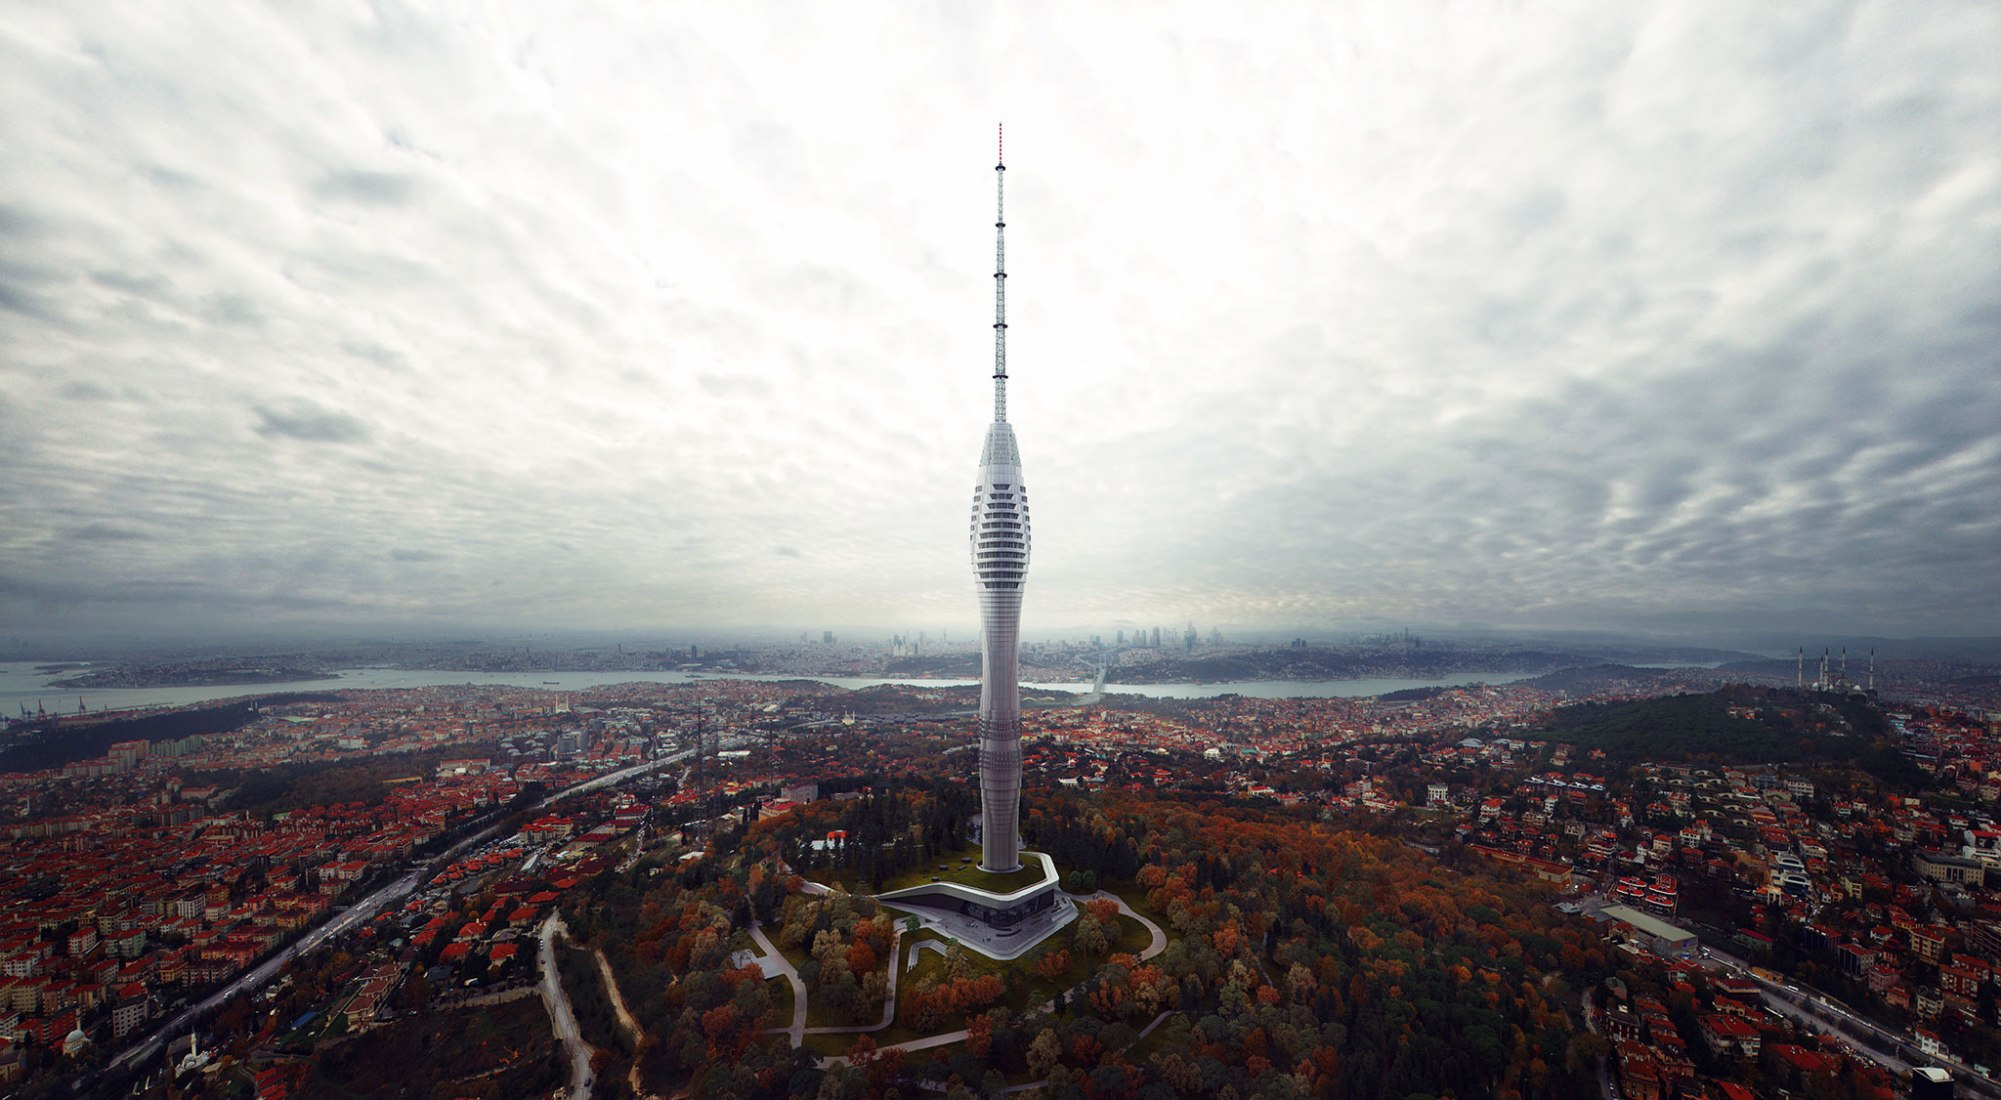 Istanbul's Futuristic Tower Raising by MELIKE ALTINISIK ARCHITECTS. Photograph by Ege Acar.